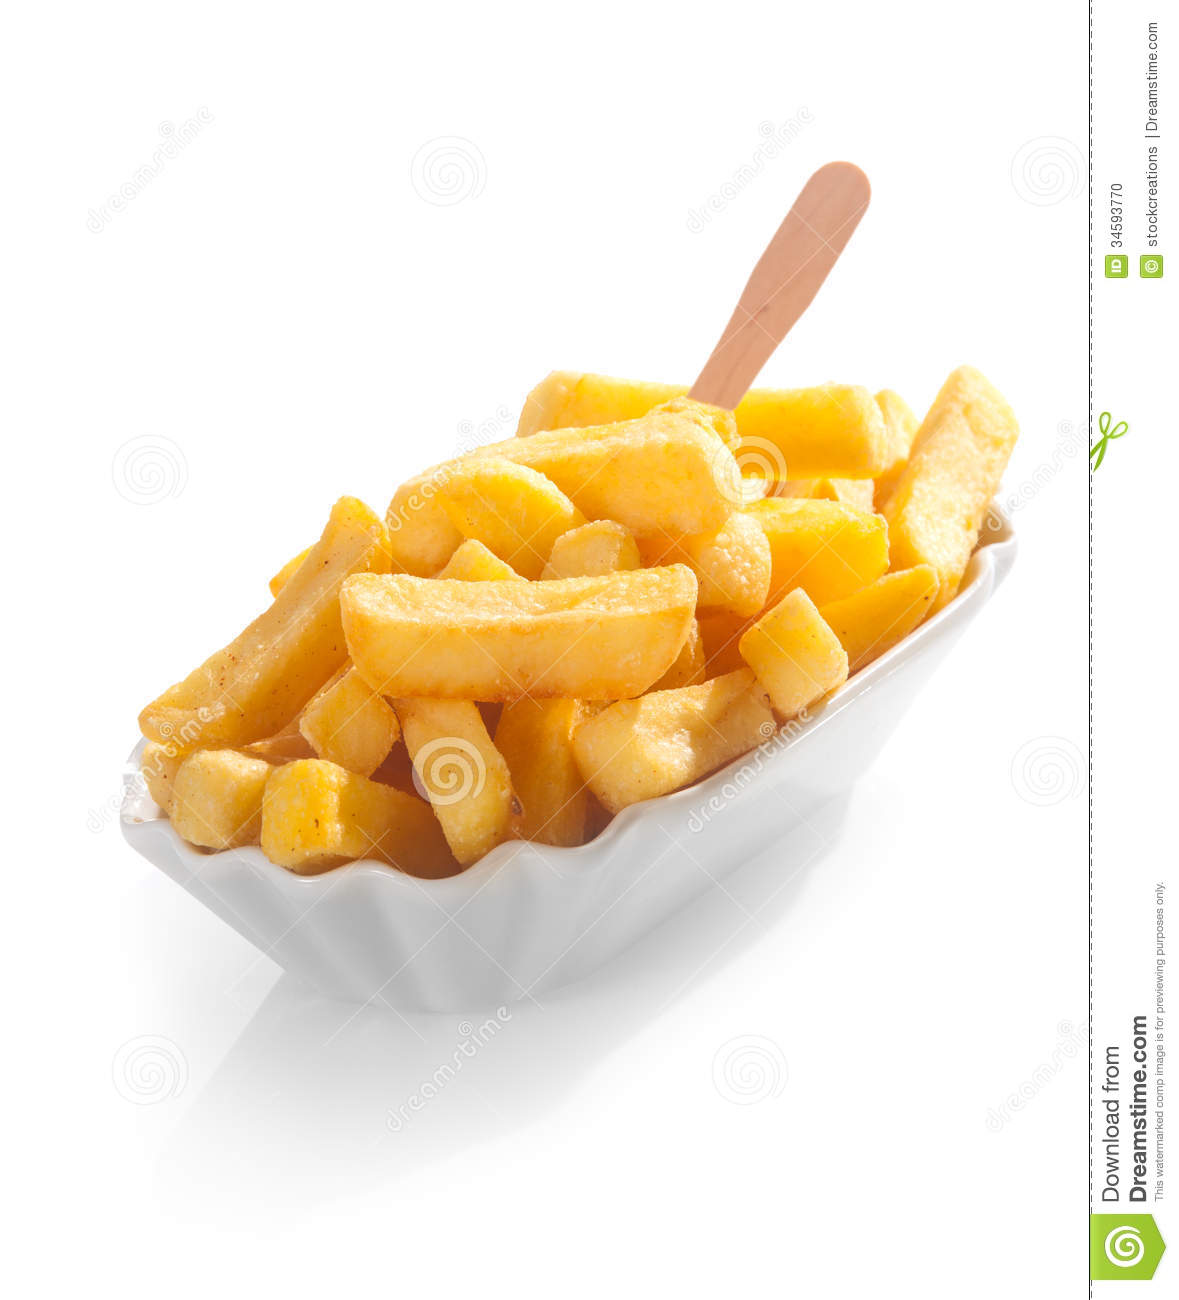 Fried Potato Wedges Or Chips Stock Photo - Image of ... Fried Potato Wedges Calorie